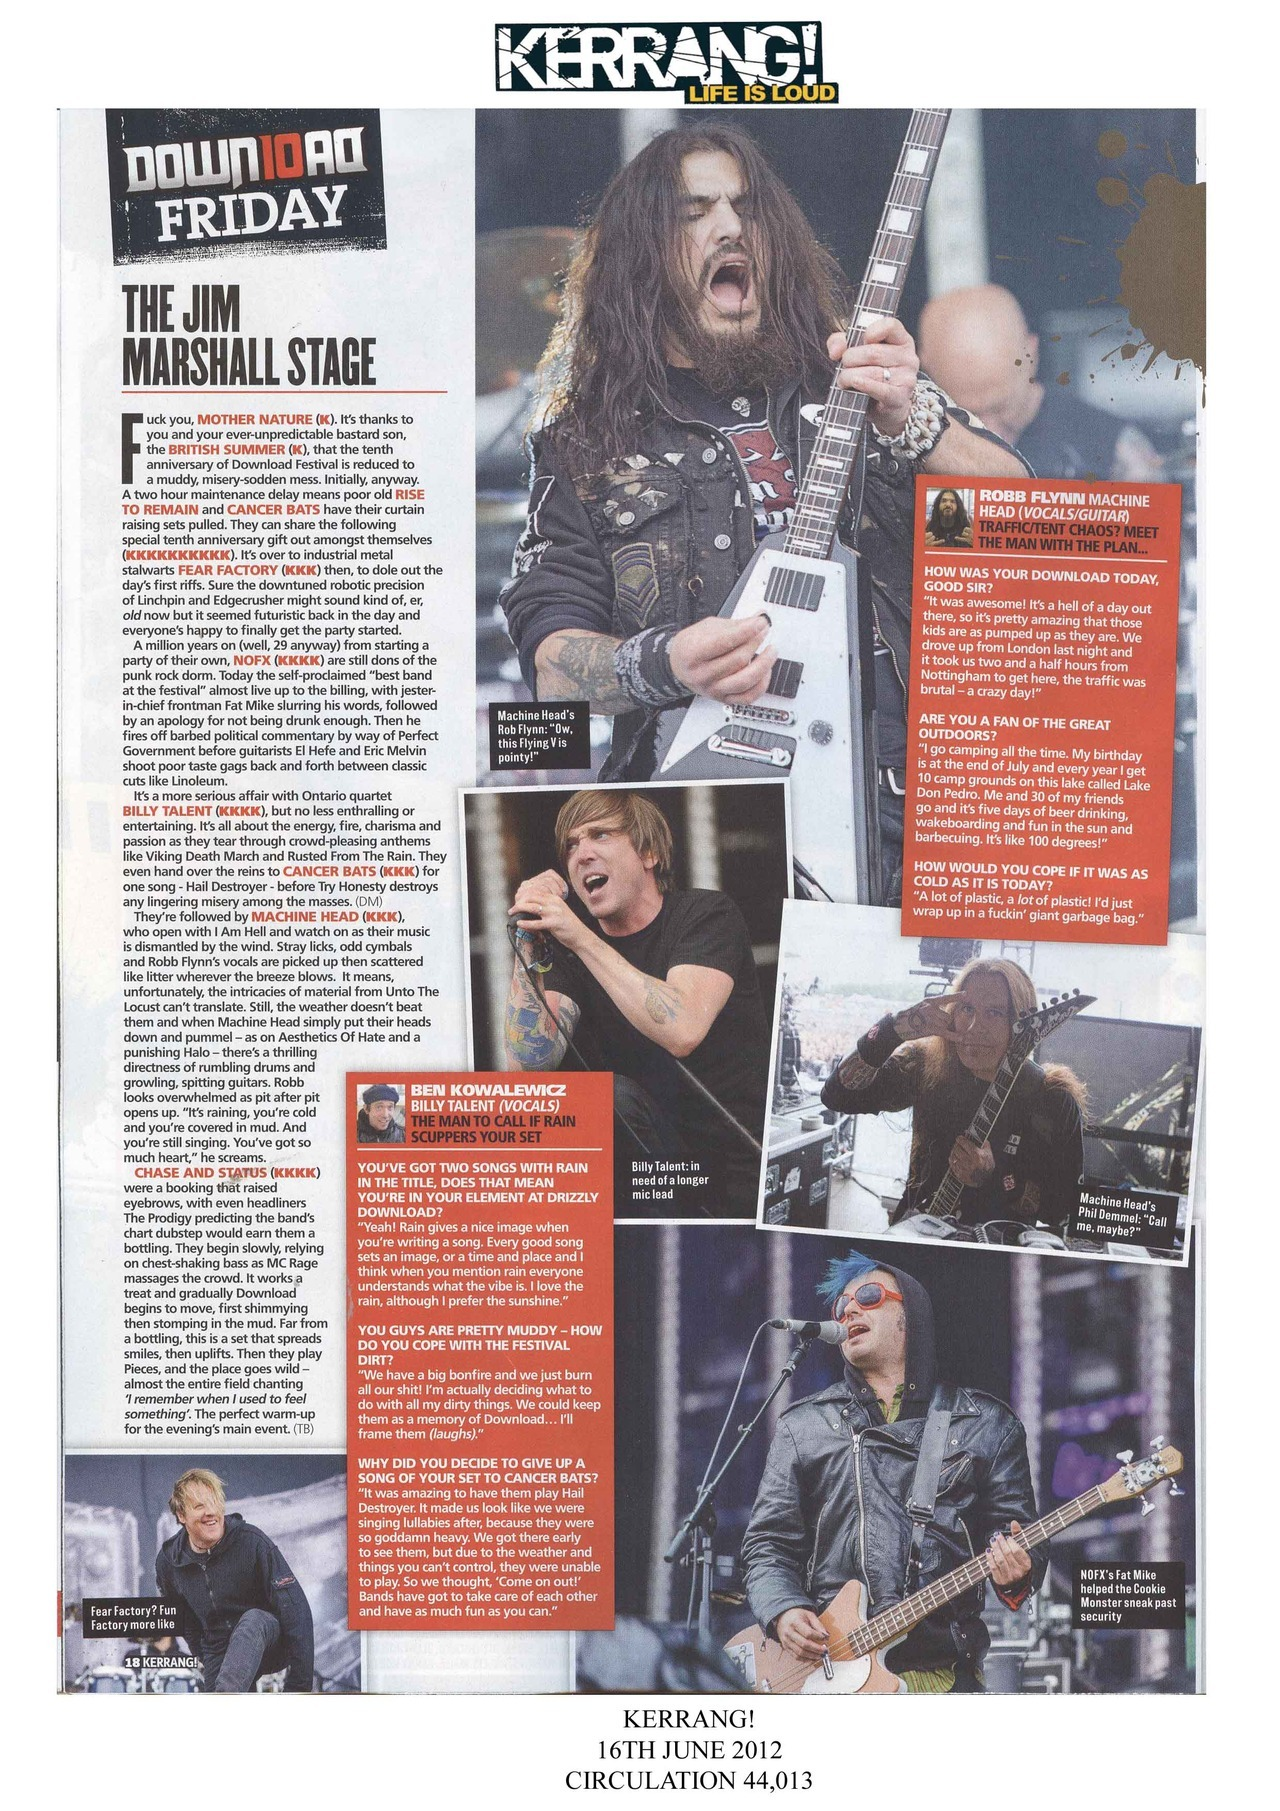 billytalentband:  Live review and interview with Ben in Kerrang! from the Download Festival! - Jessica